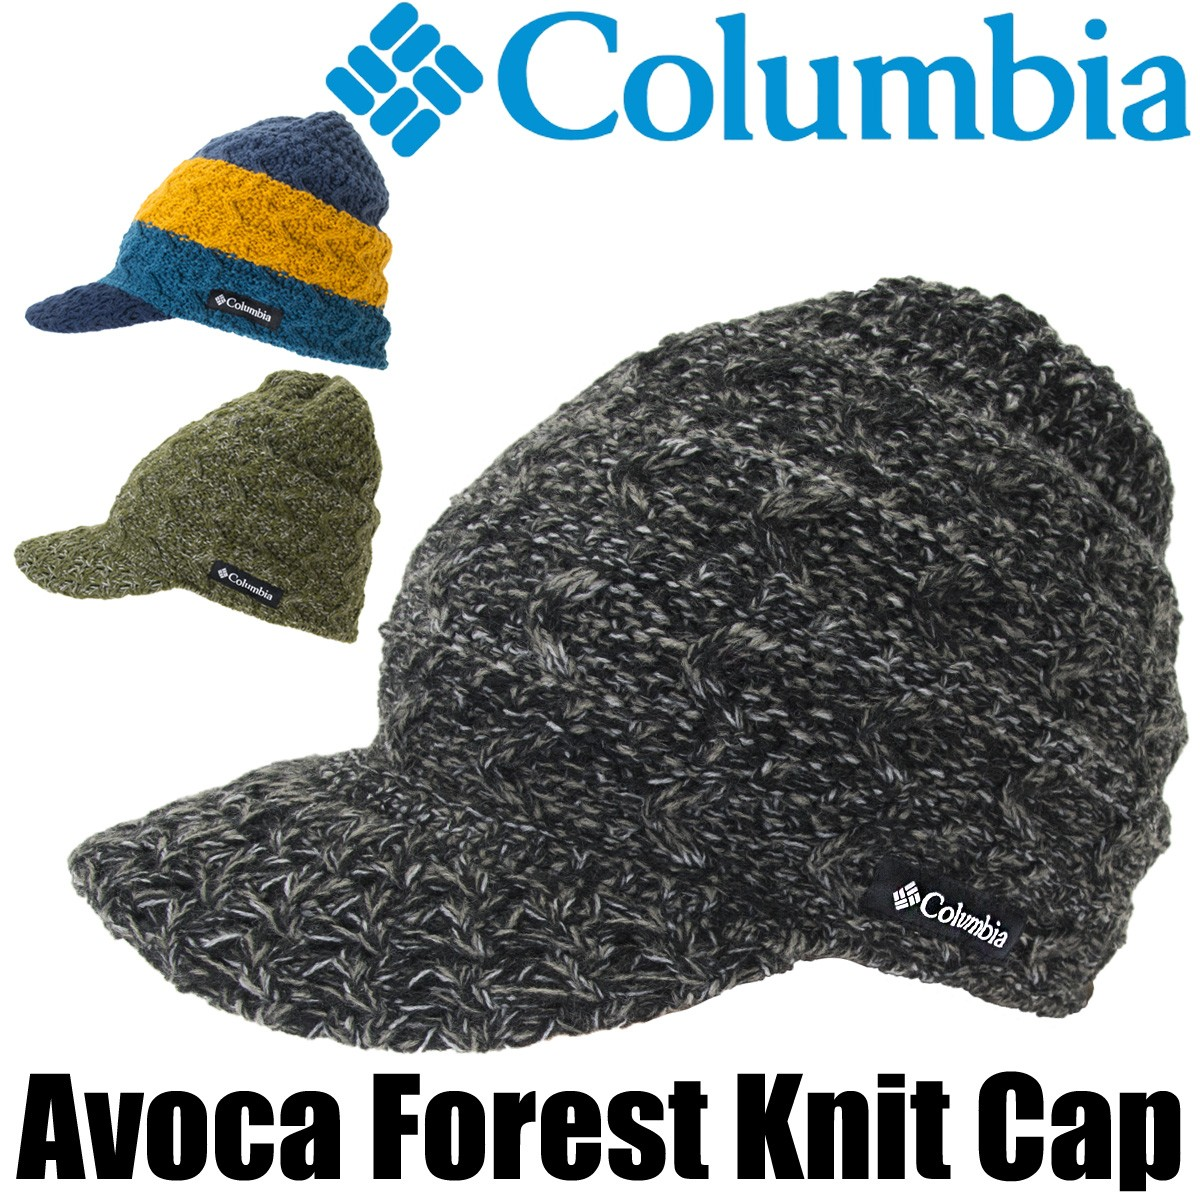 Avoca Forest Knit Cap